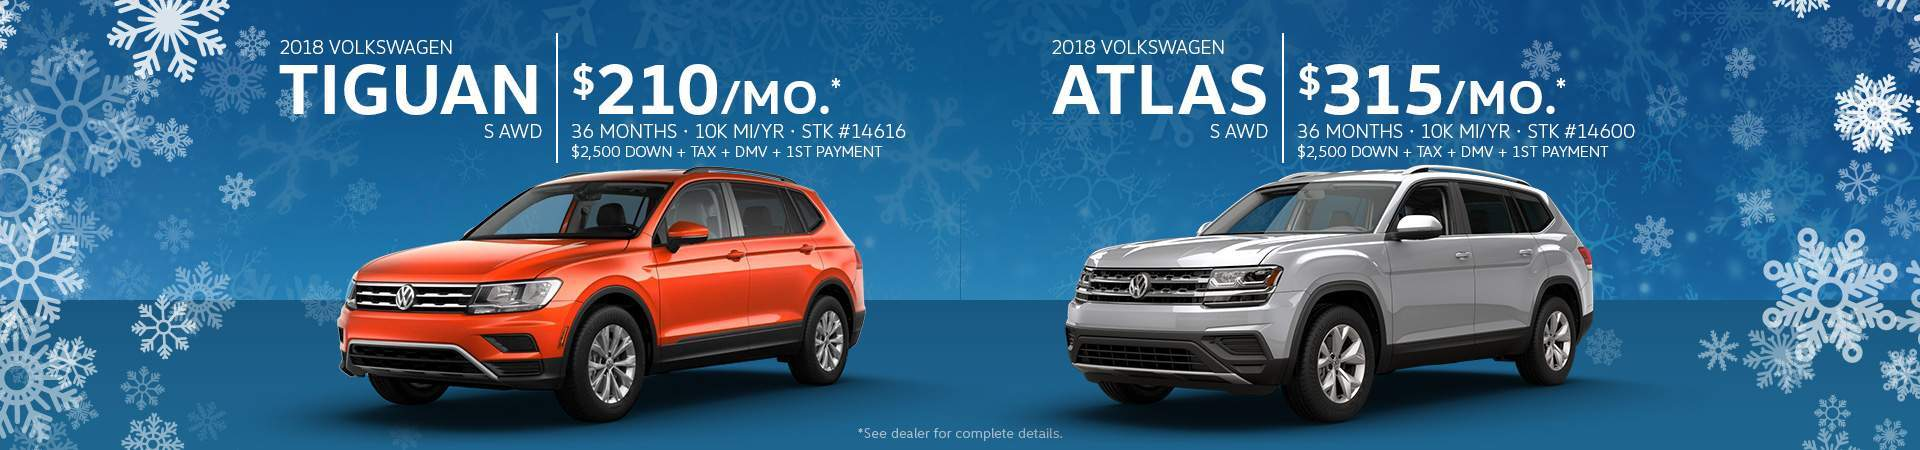 January Tiguan Atlas Exclusive